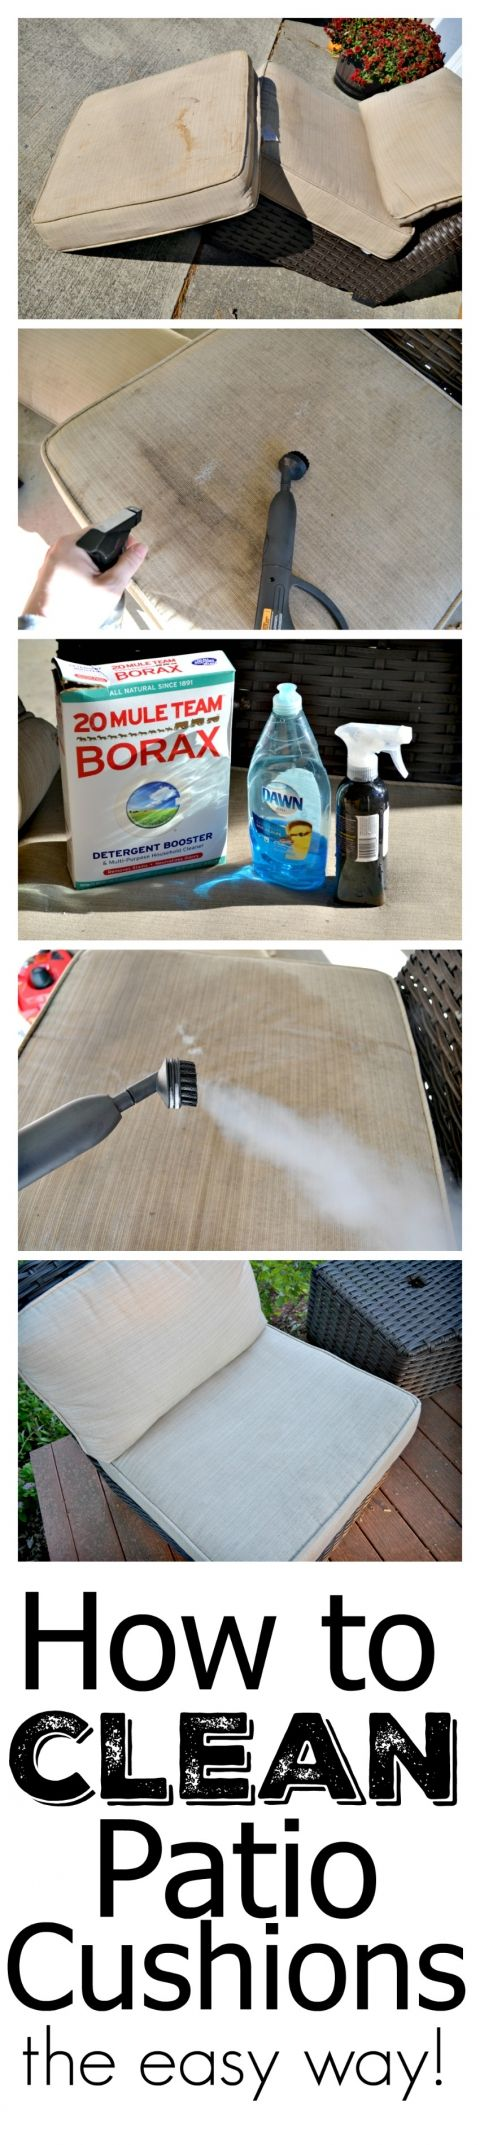 how-to-clean-patio-cushions-the-easy-way-from-the-cards-we-drew